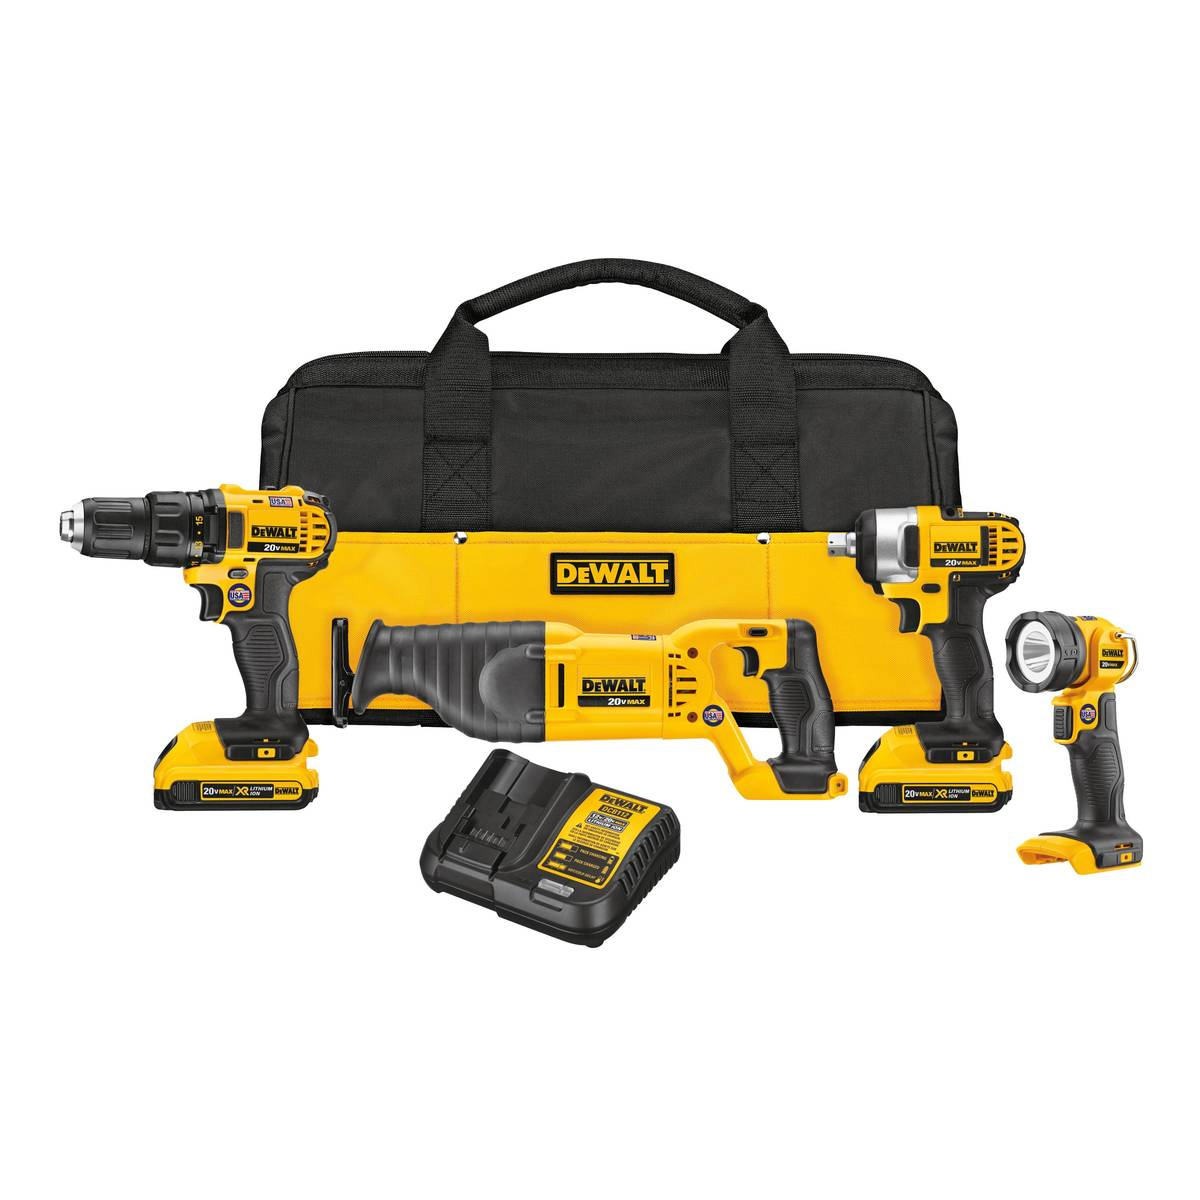 The DeWalt four-tool combo kit includes drill/driver, impact wrench, reciprocating saw, LED wor ...